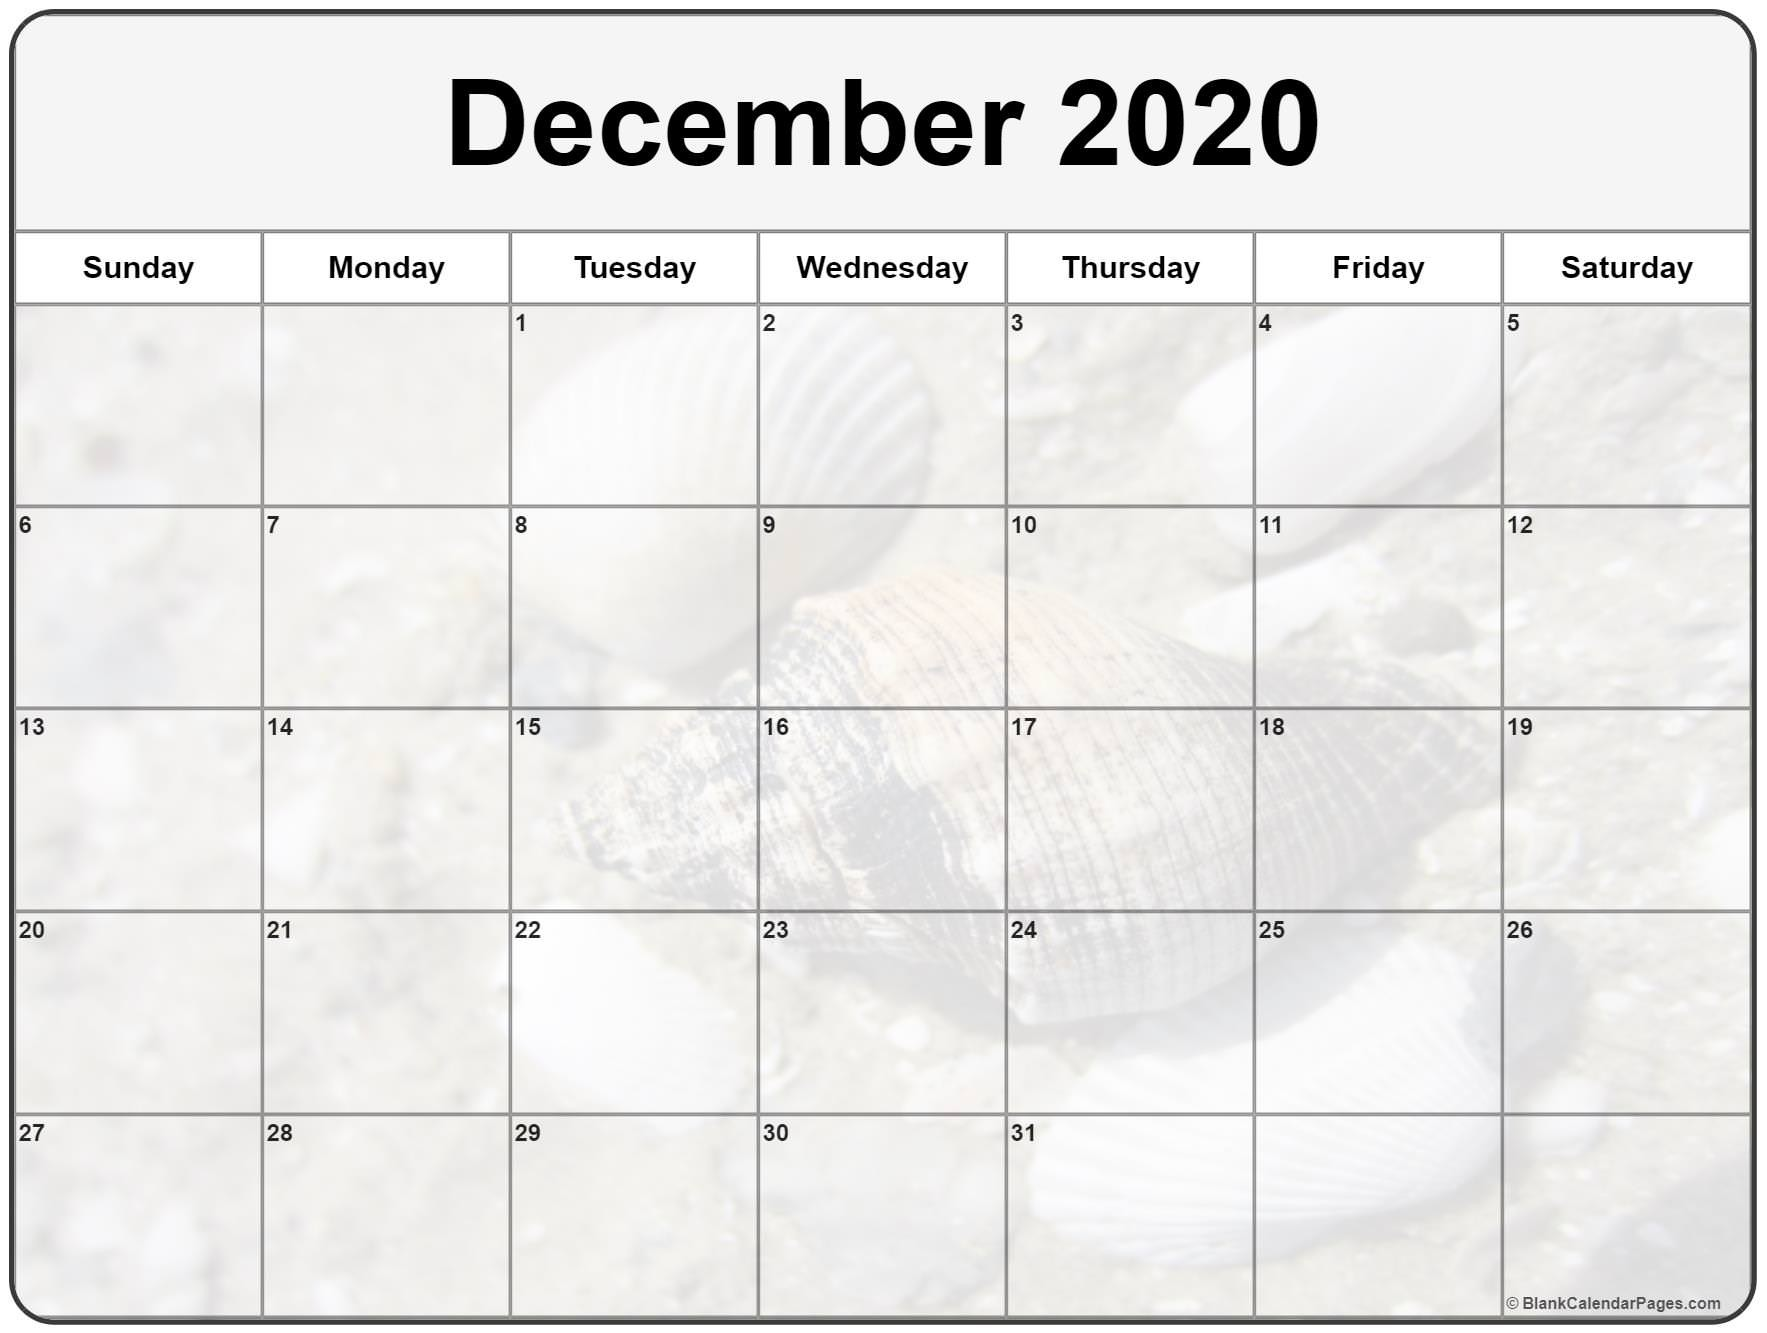 December 2020 Printable Calendar Collection Of December 2020 Photo Calendars with Image